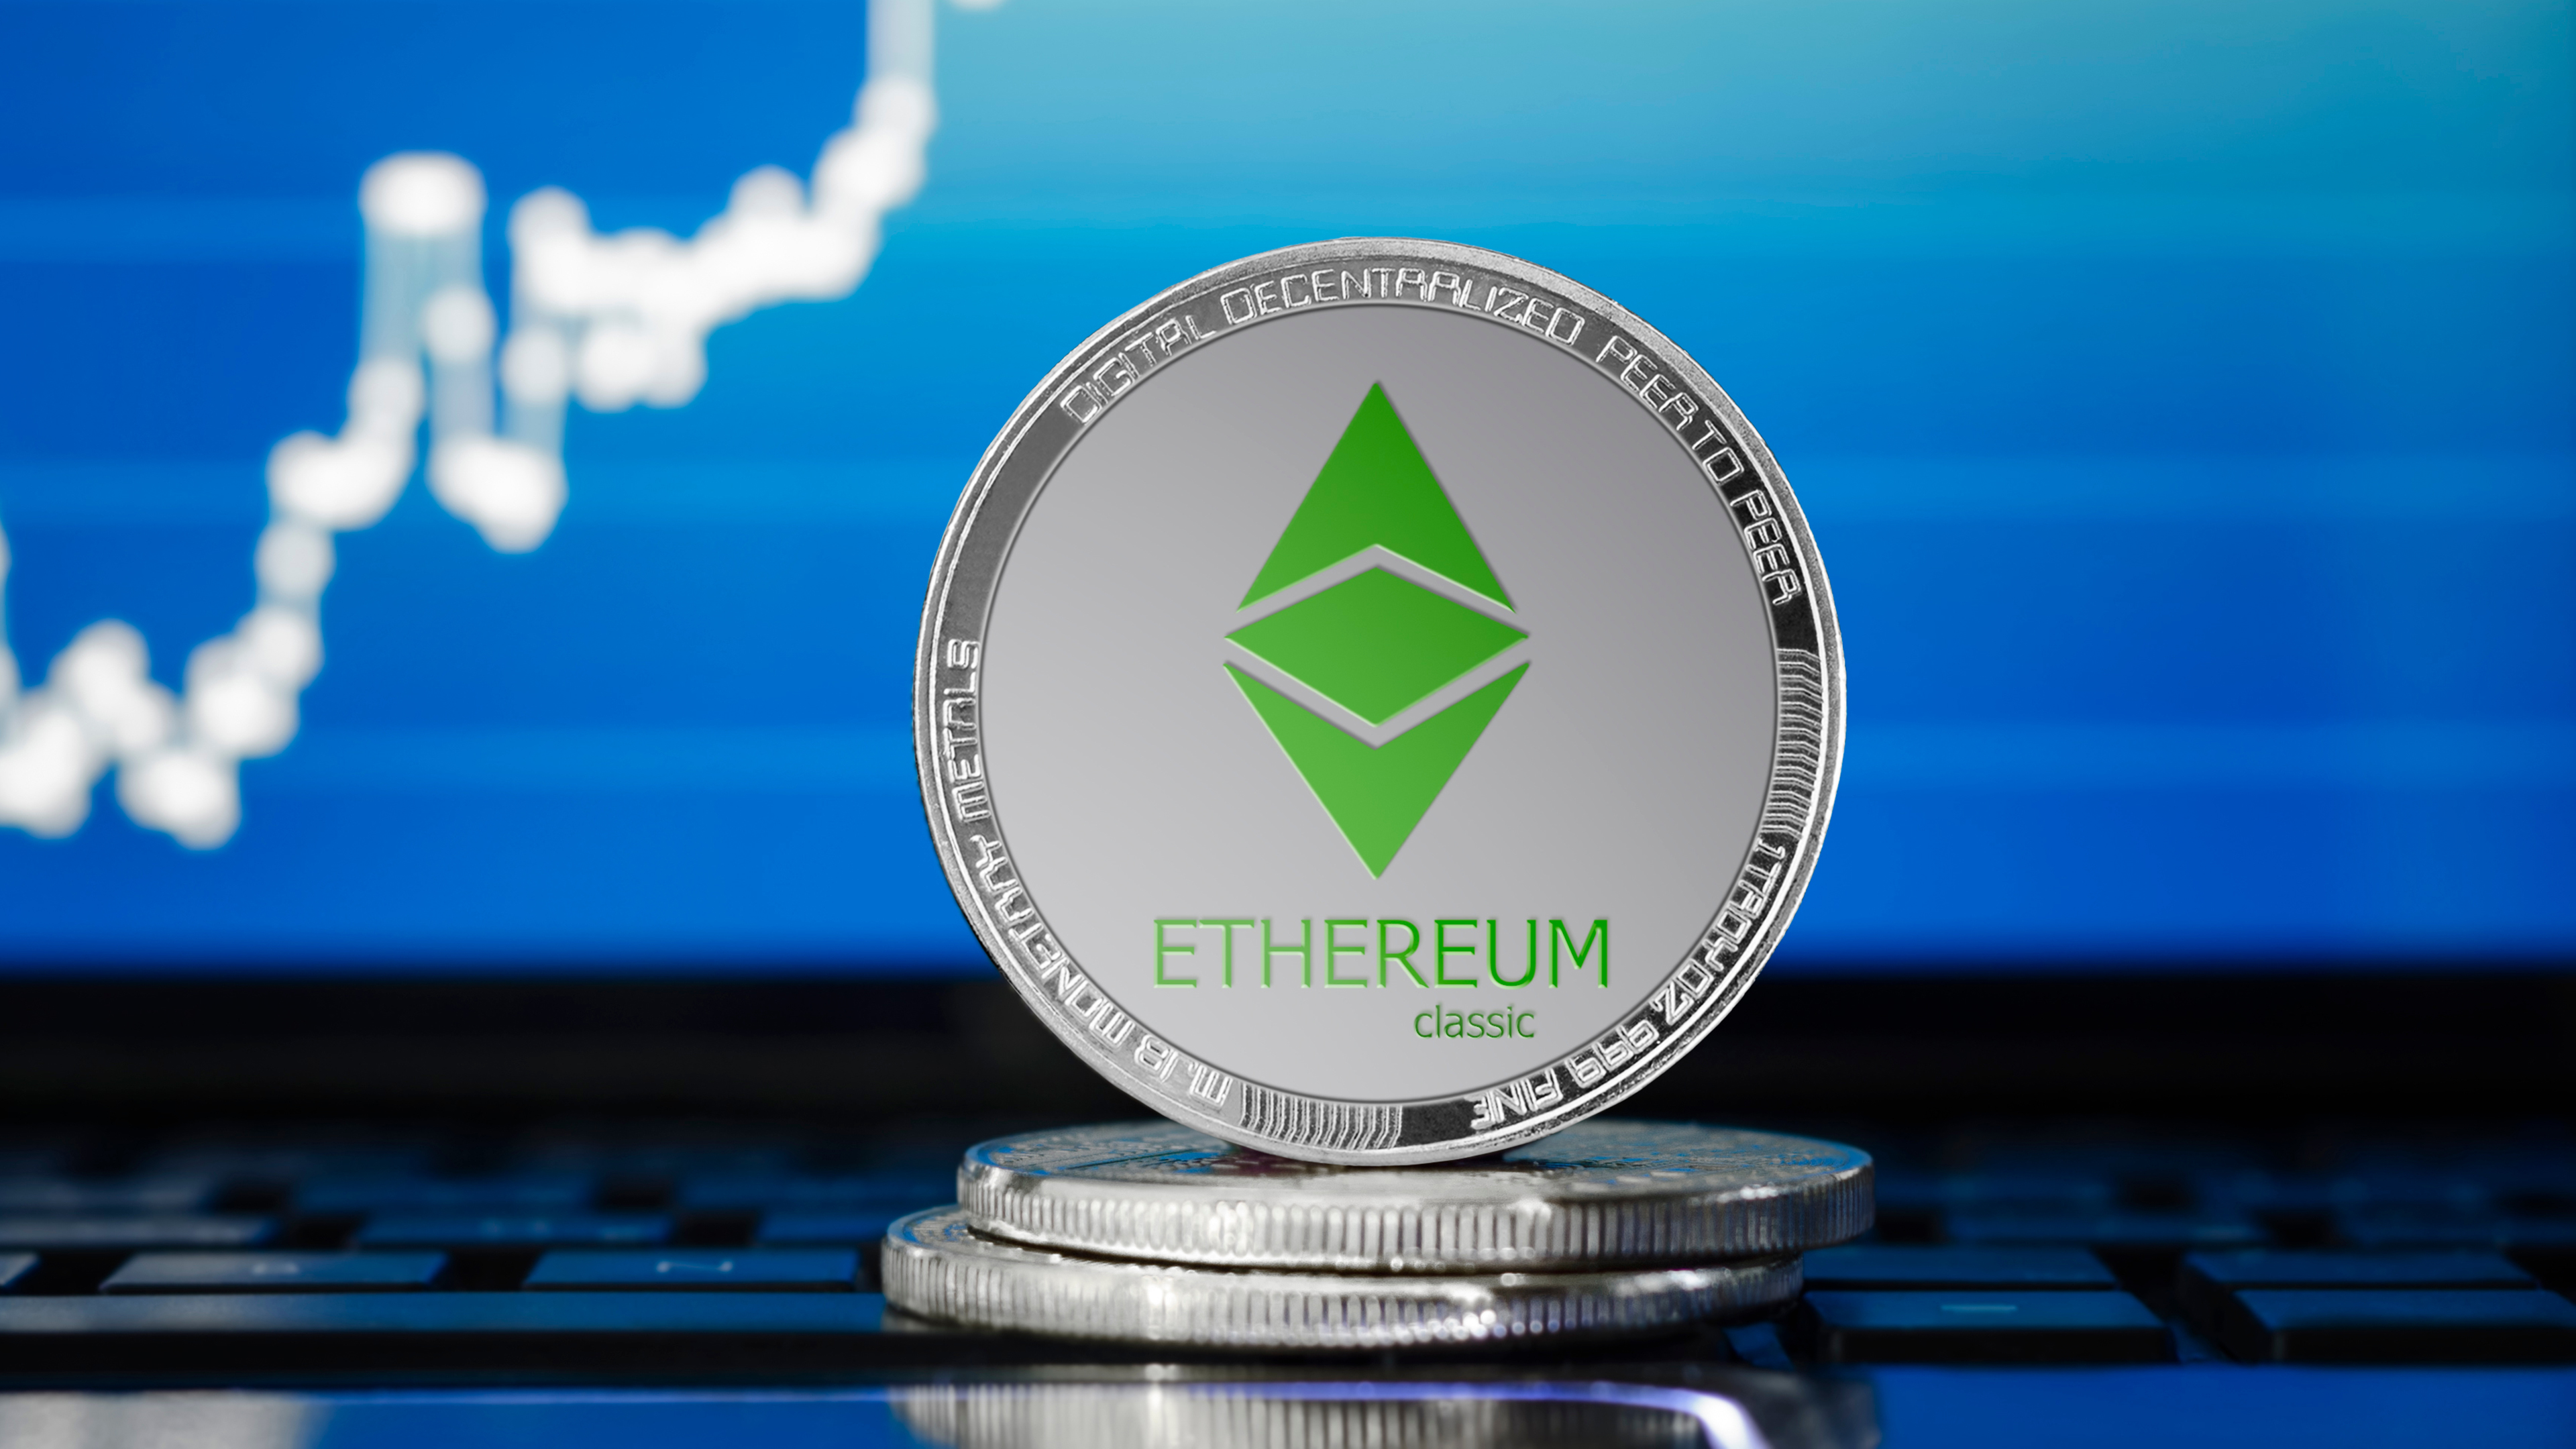 Top cryptocurrency by value — Ethereum Classic